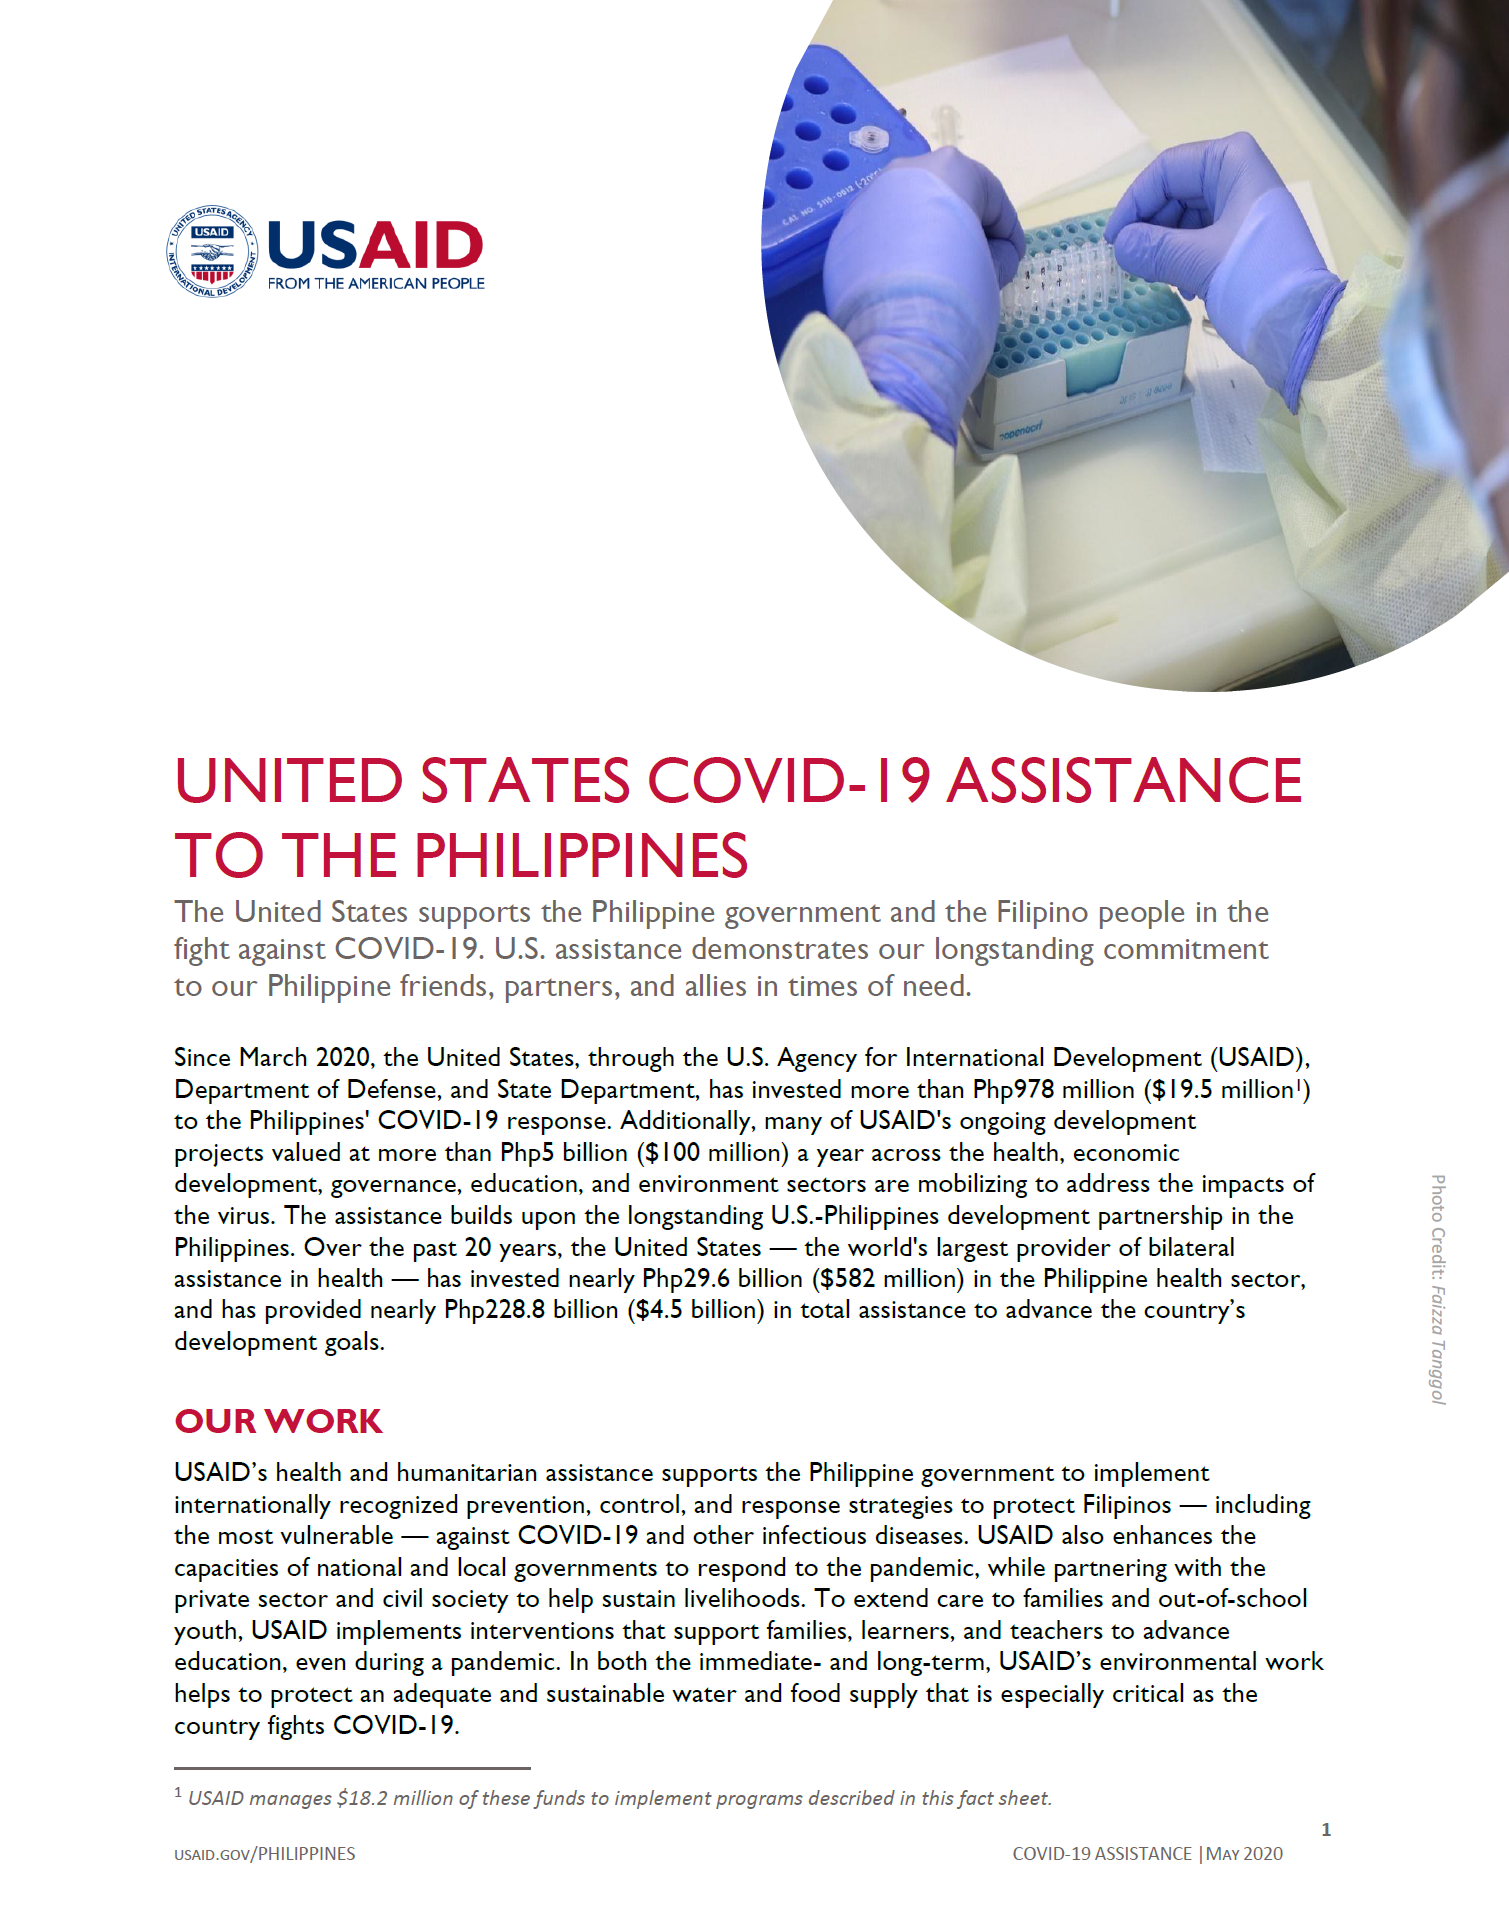 United States COVID-19 Assistance to the Philippines